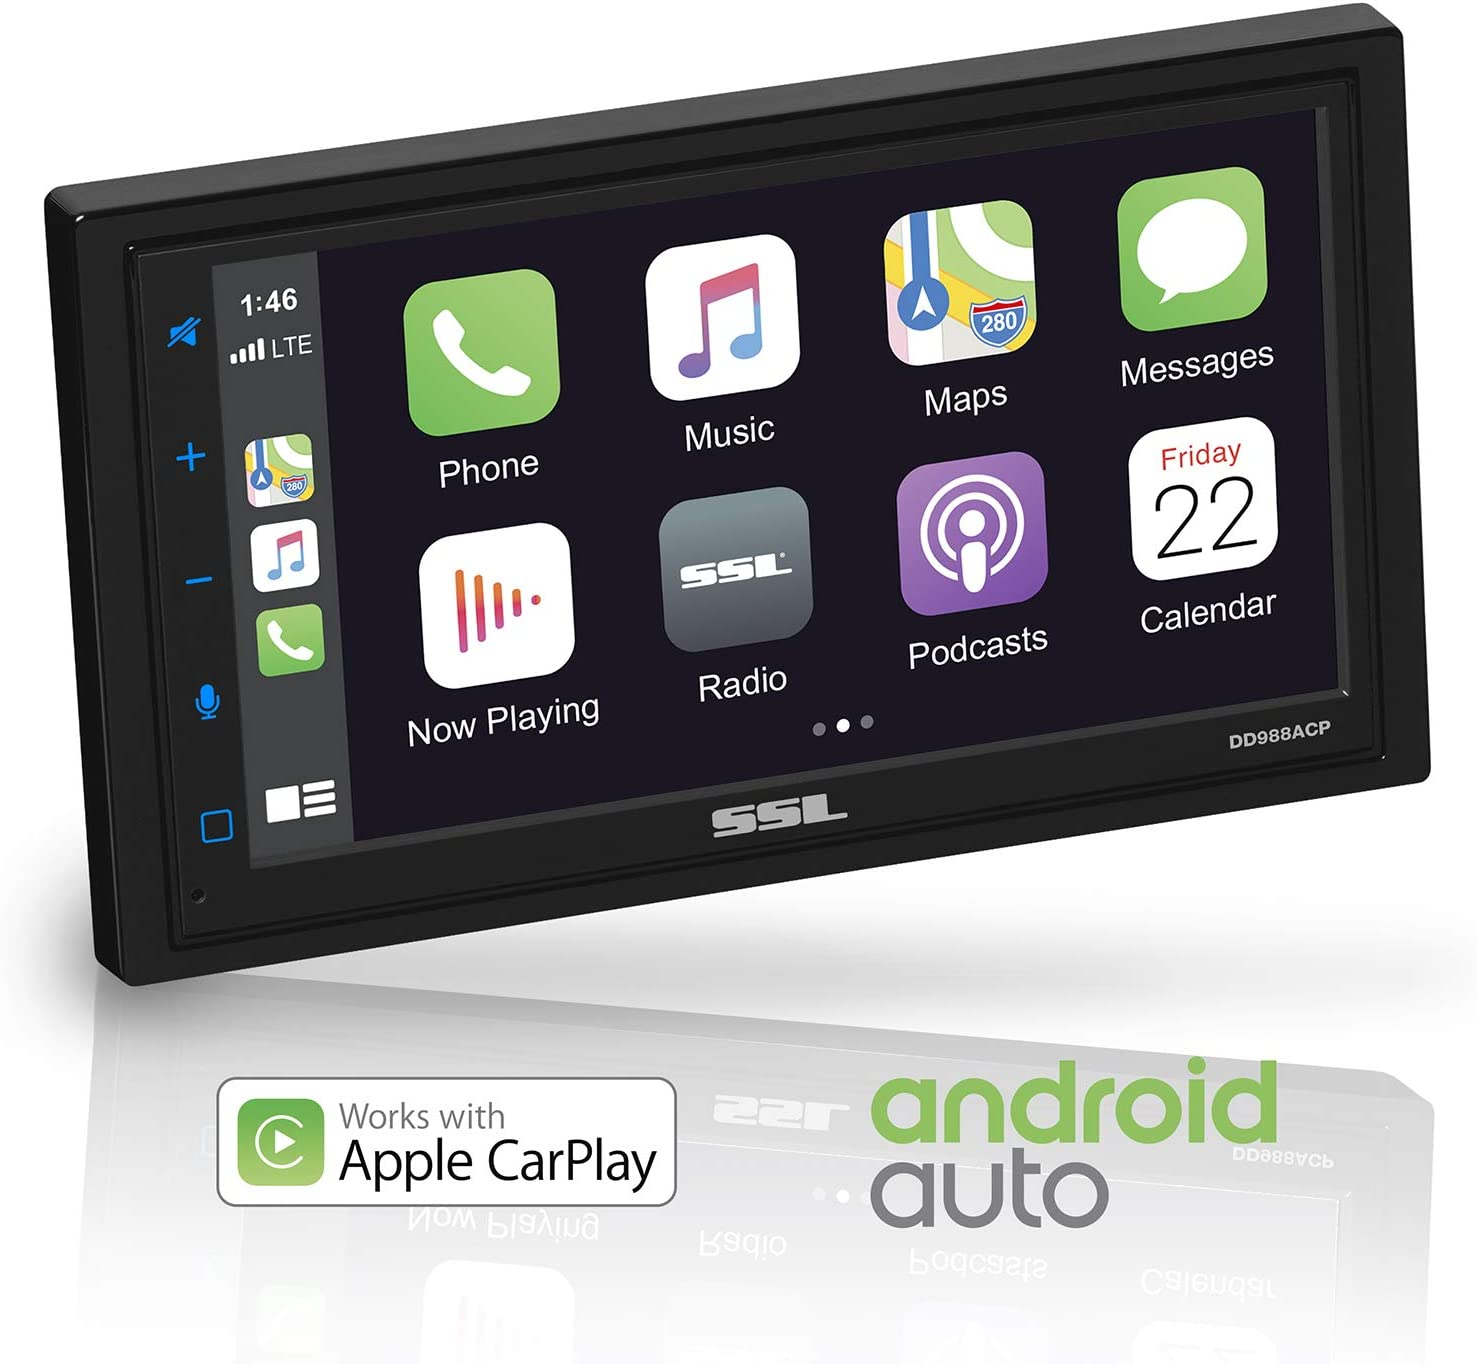 Sound Storm DD988ACP Apple CarPlay Android Auto Car Multimedia Player - Double-Din, 6.75 Inch LCD Touchscreen, Bluetooth, MP3-USB-Aux in, No CD-DVD, AM/FM Car Radio, Multi Color Illumination